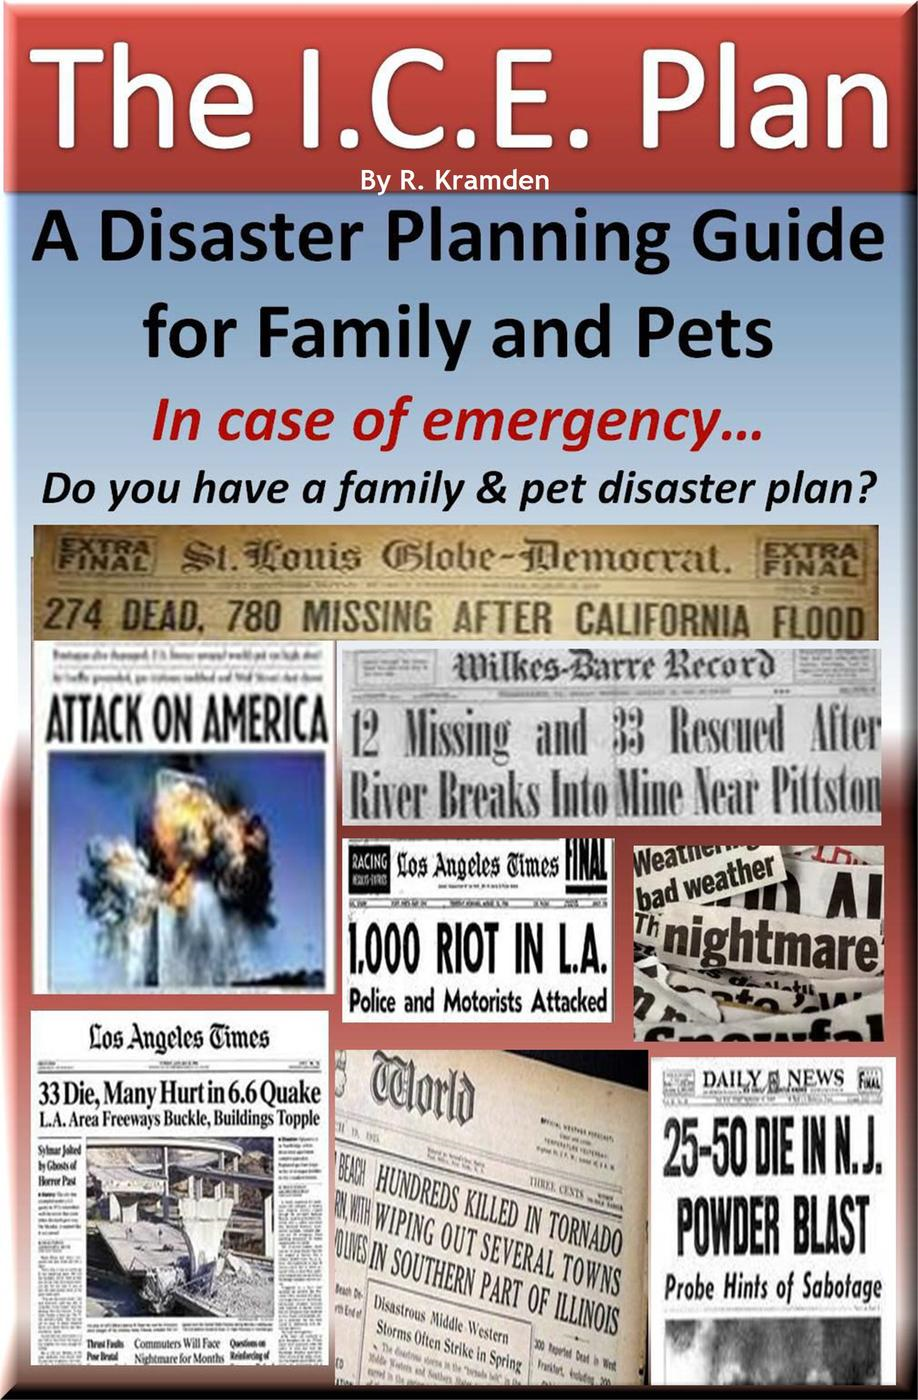 I.C.E. Plan: A Disaster Planning Guide for Family and Pets